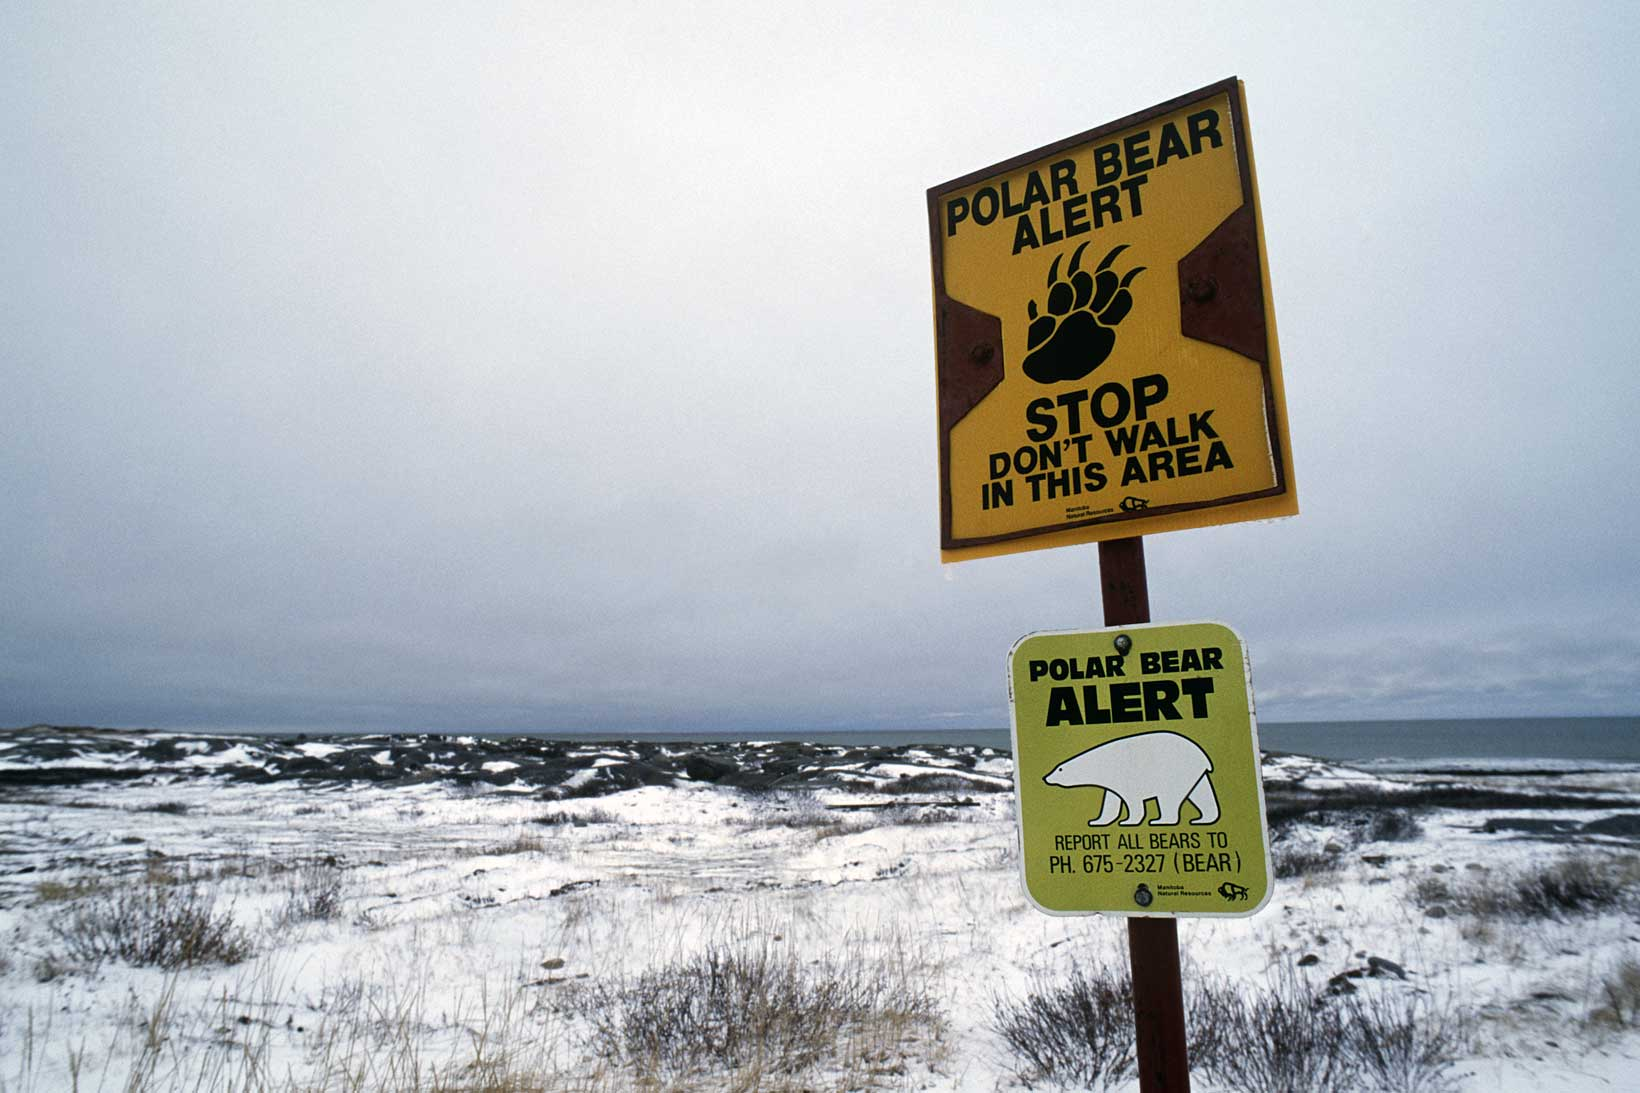 Polar bear alert sign